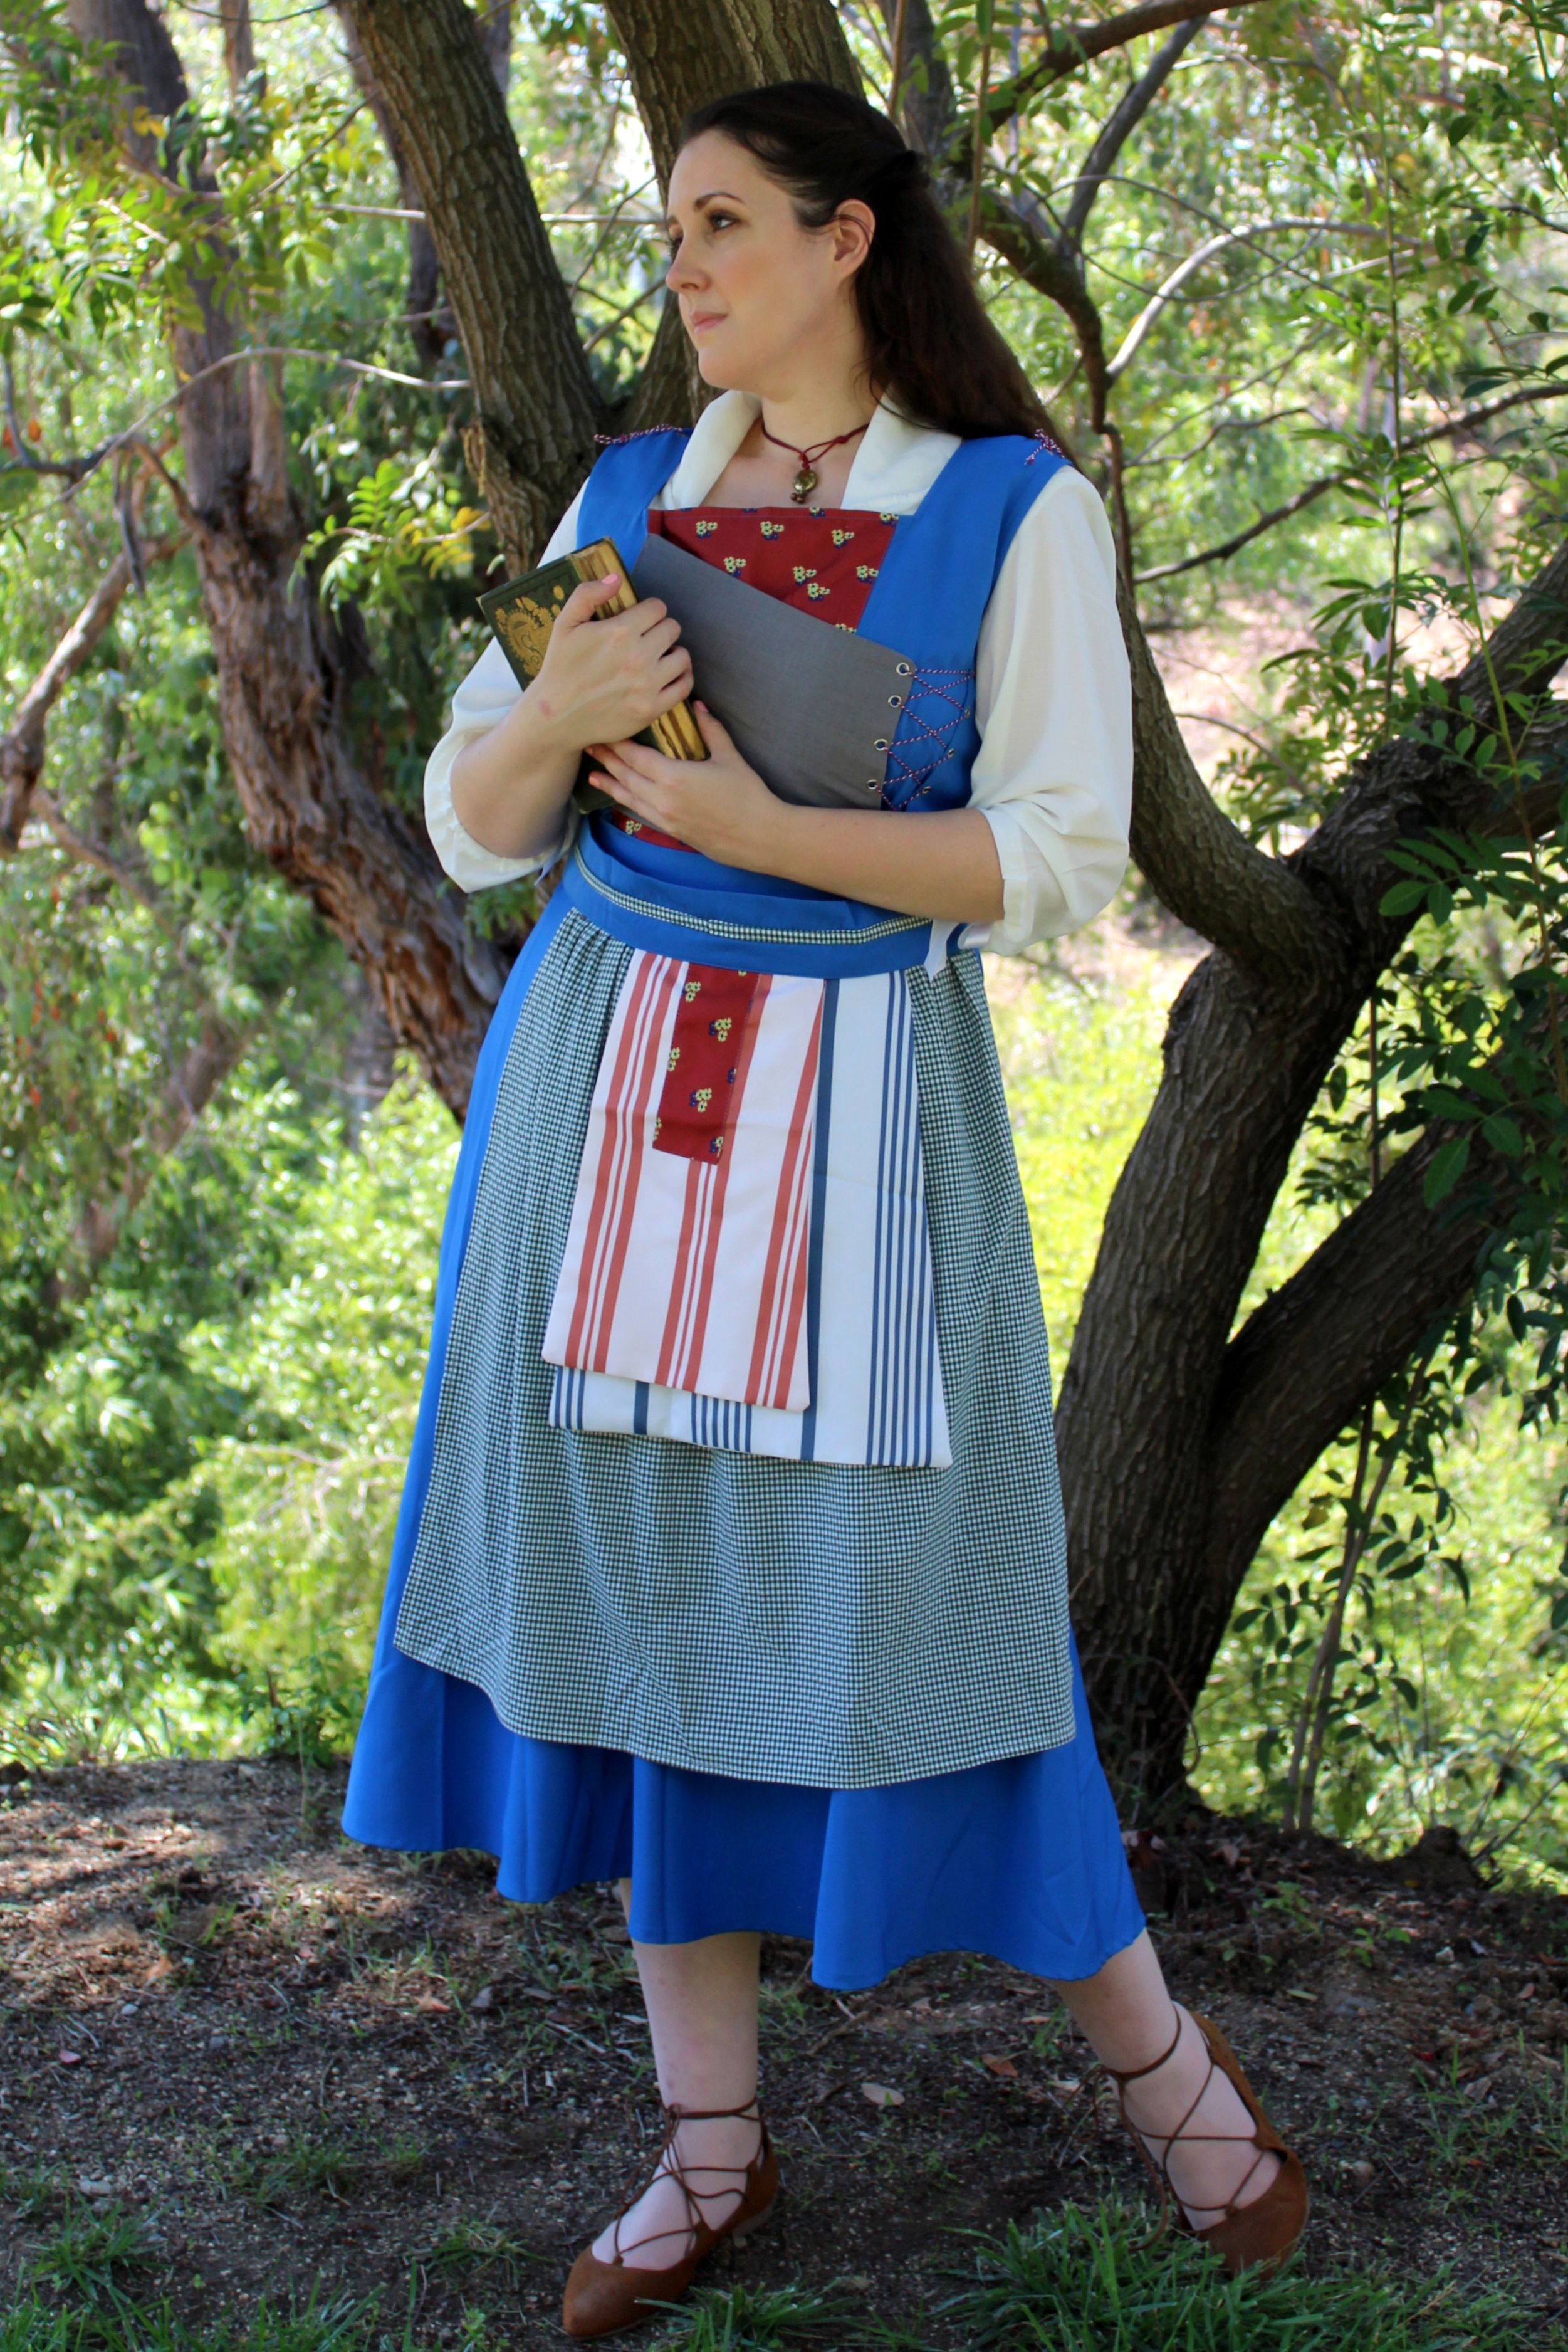 Belles 2017 live action blue peasant dress from beauty